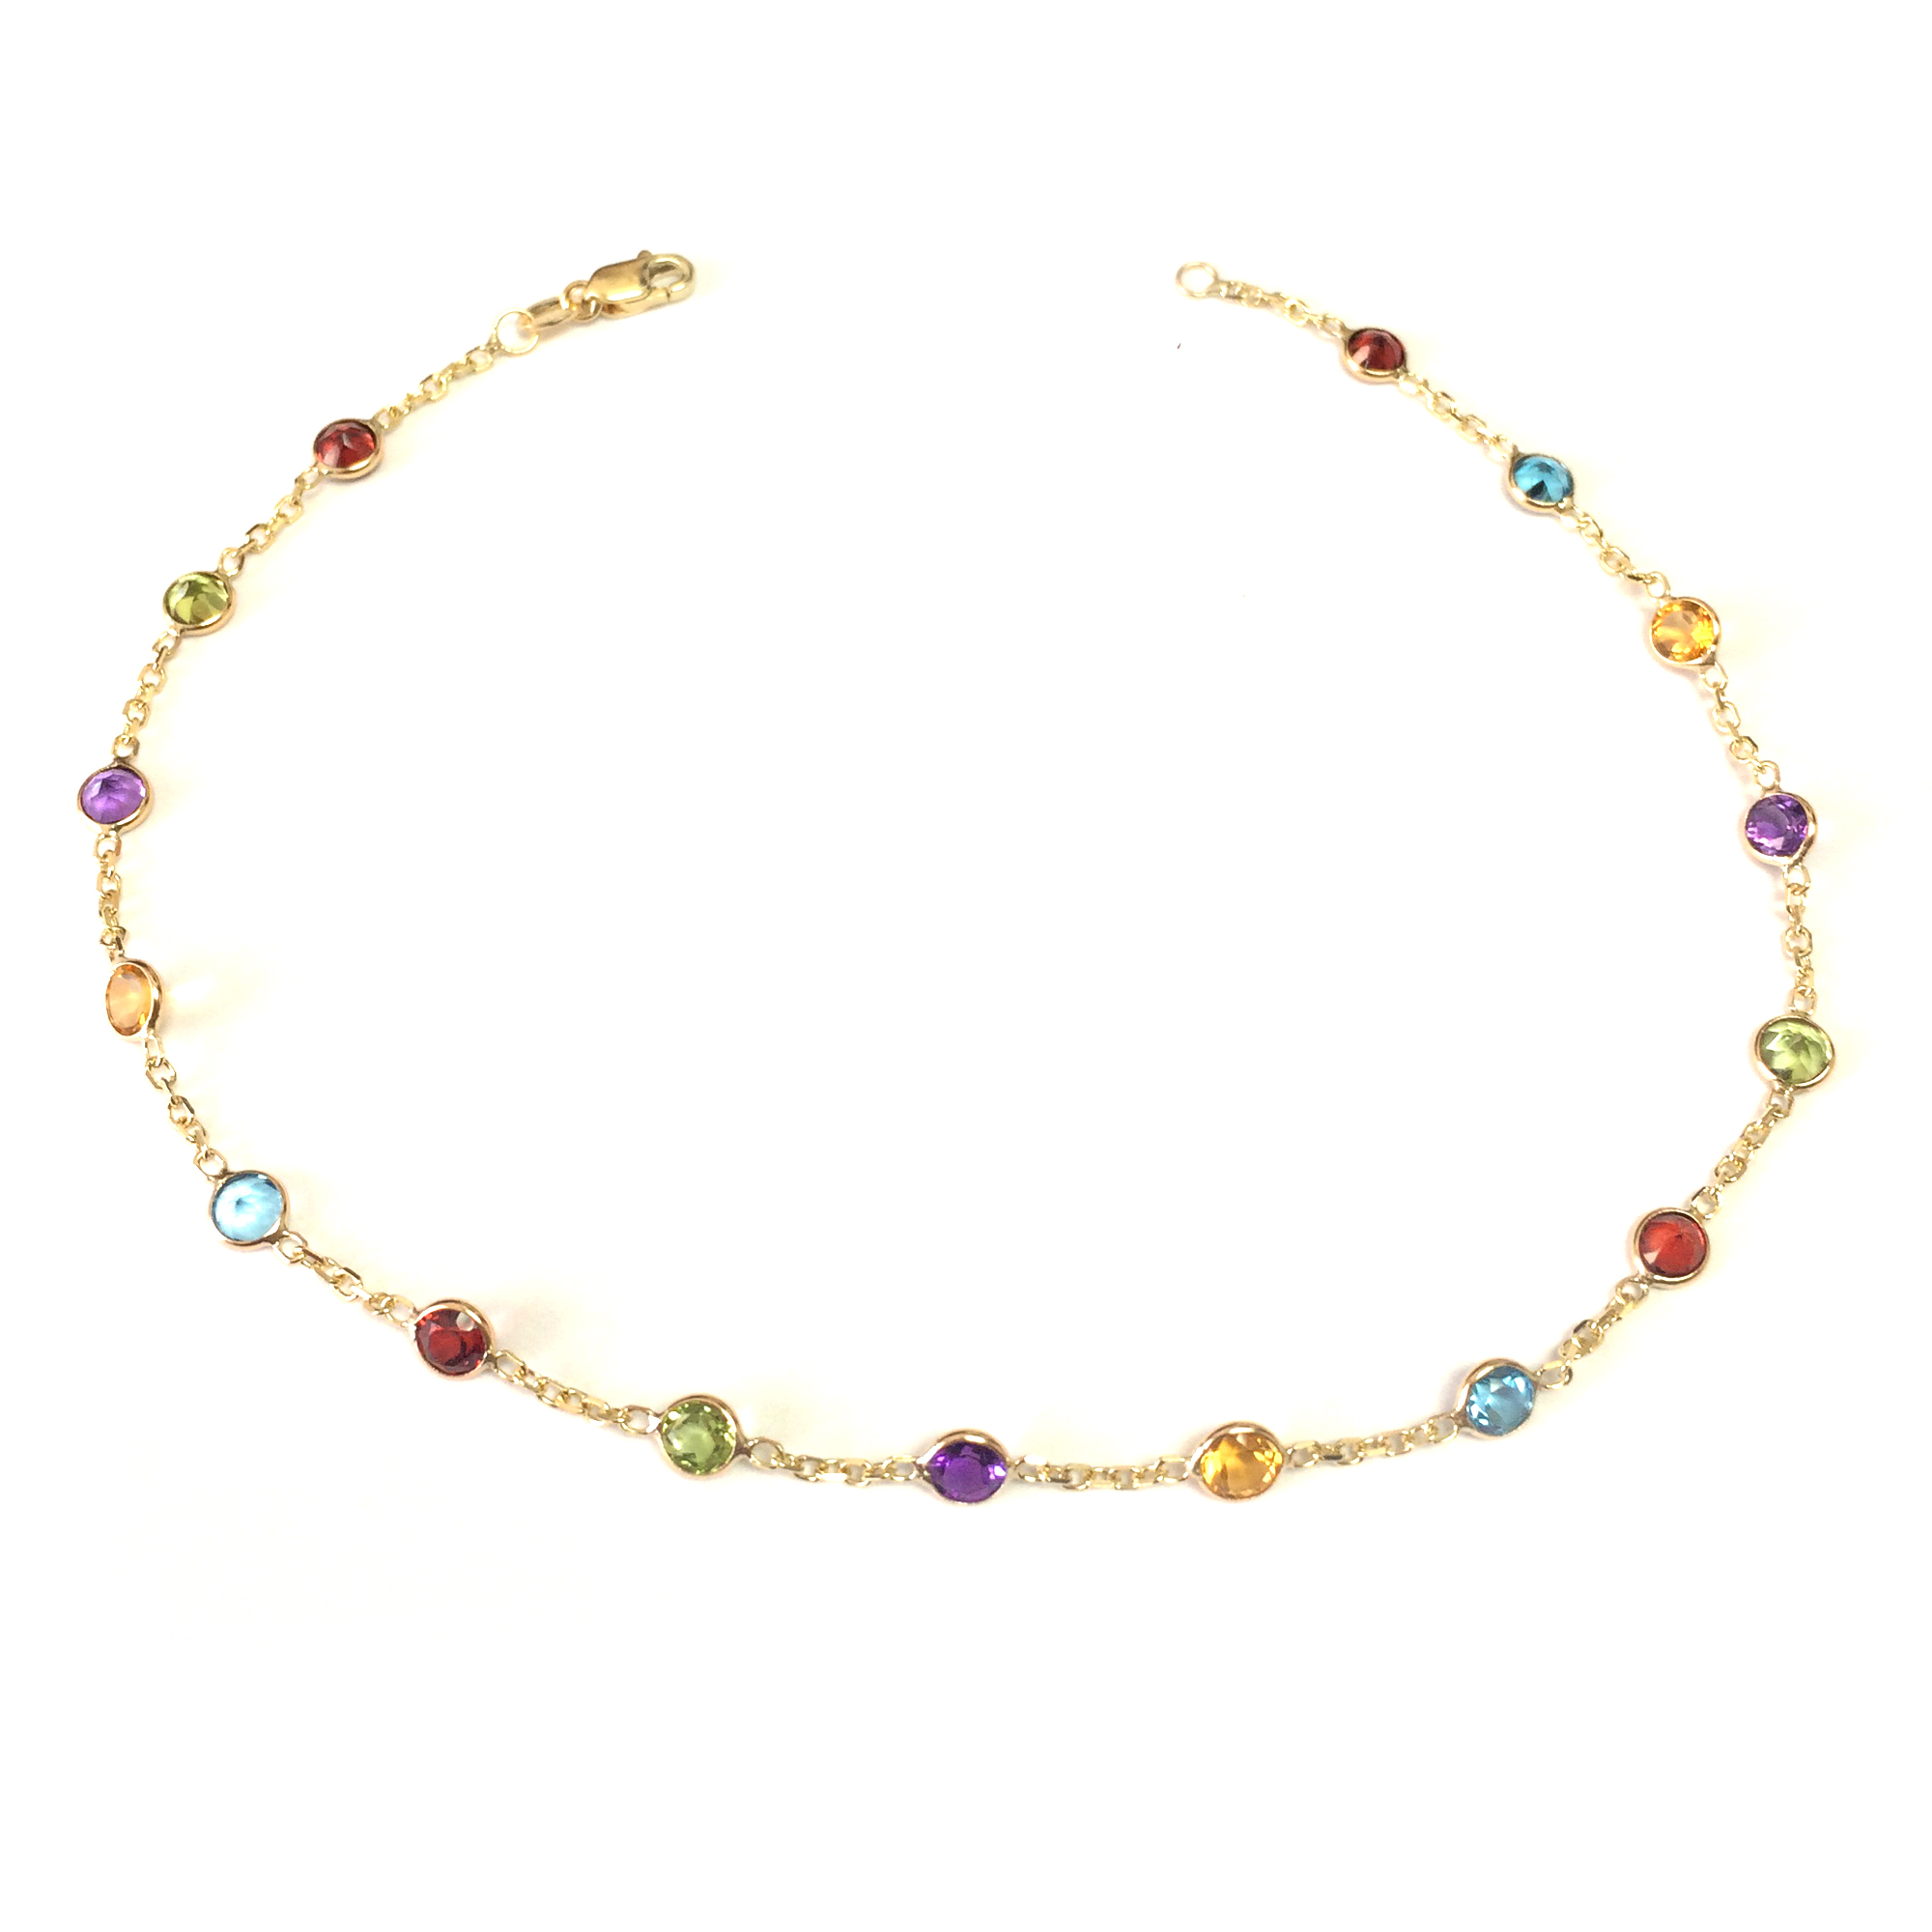 14k Yellow Gold Cable Chain Link Anklet And Alternate Round Faceted 5 Color Stones, 10″